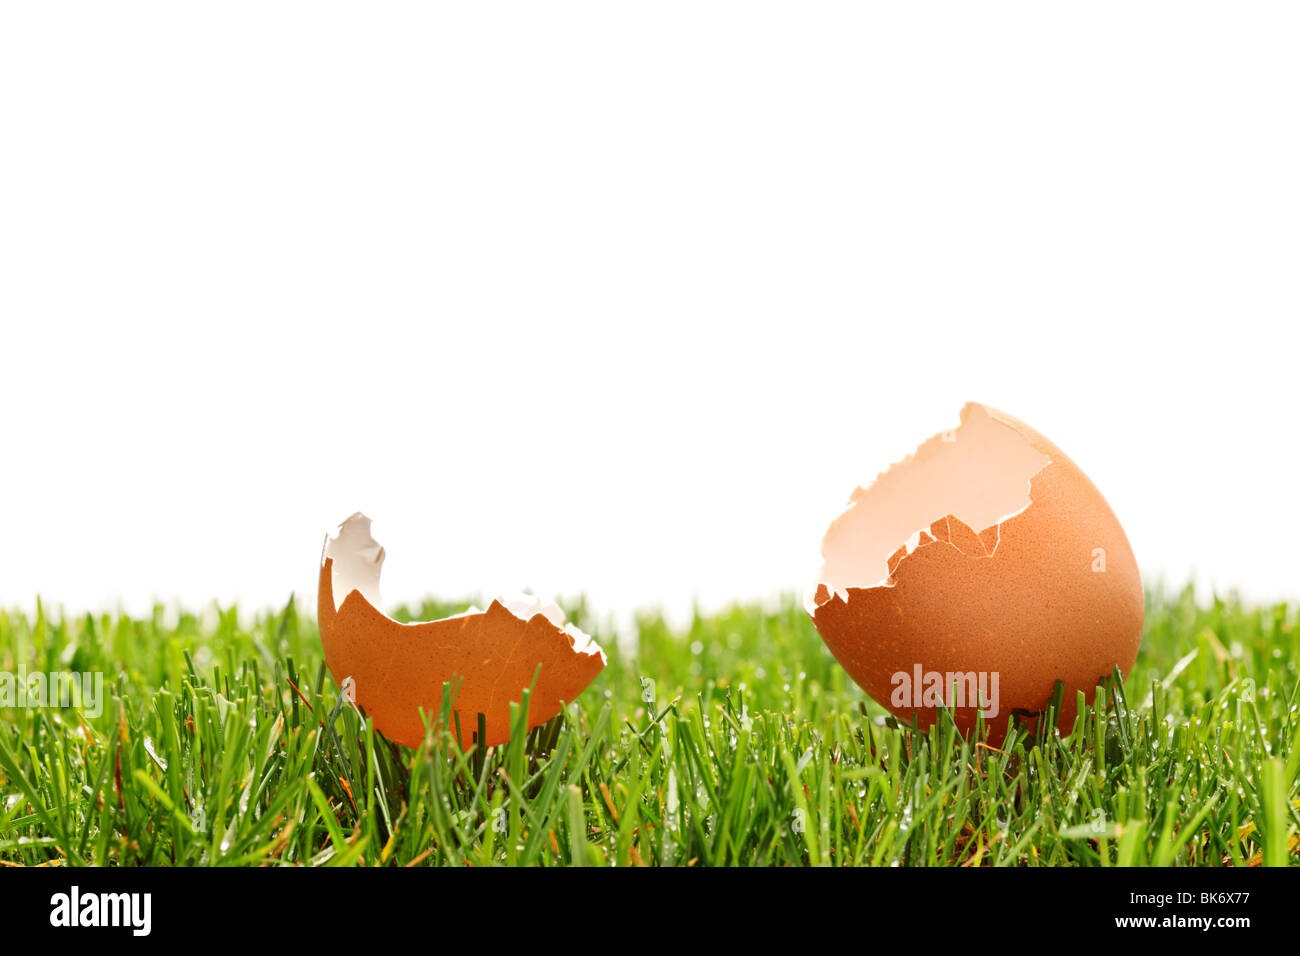 A view of a broken egg on a green grass - Stock Image